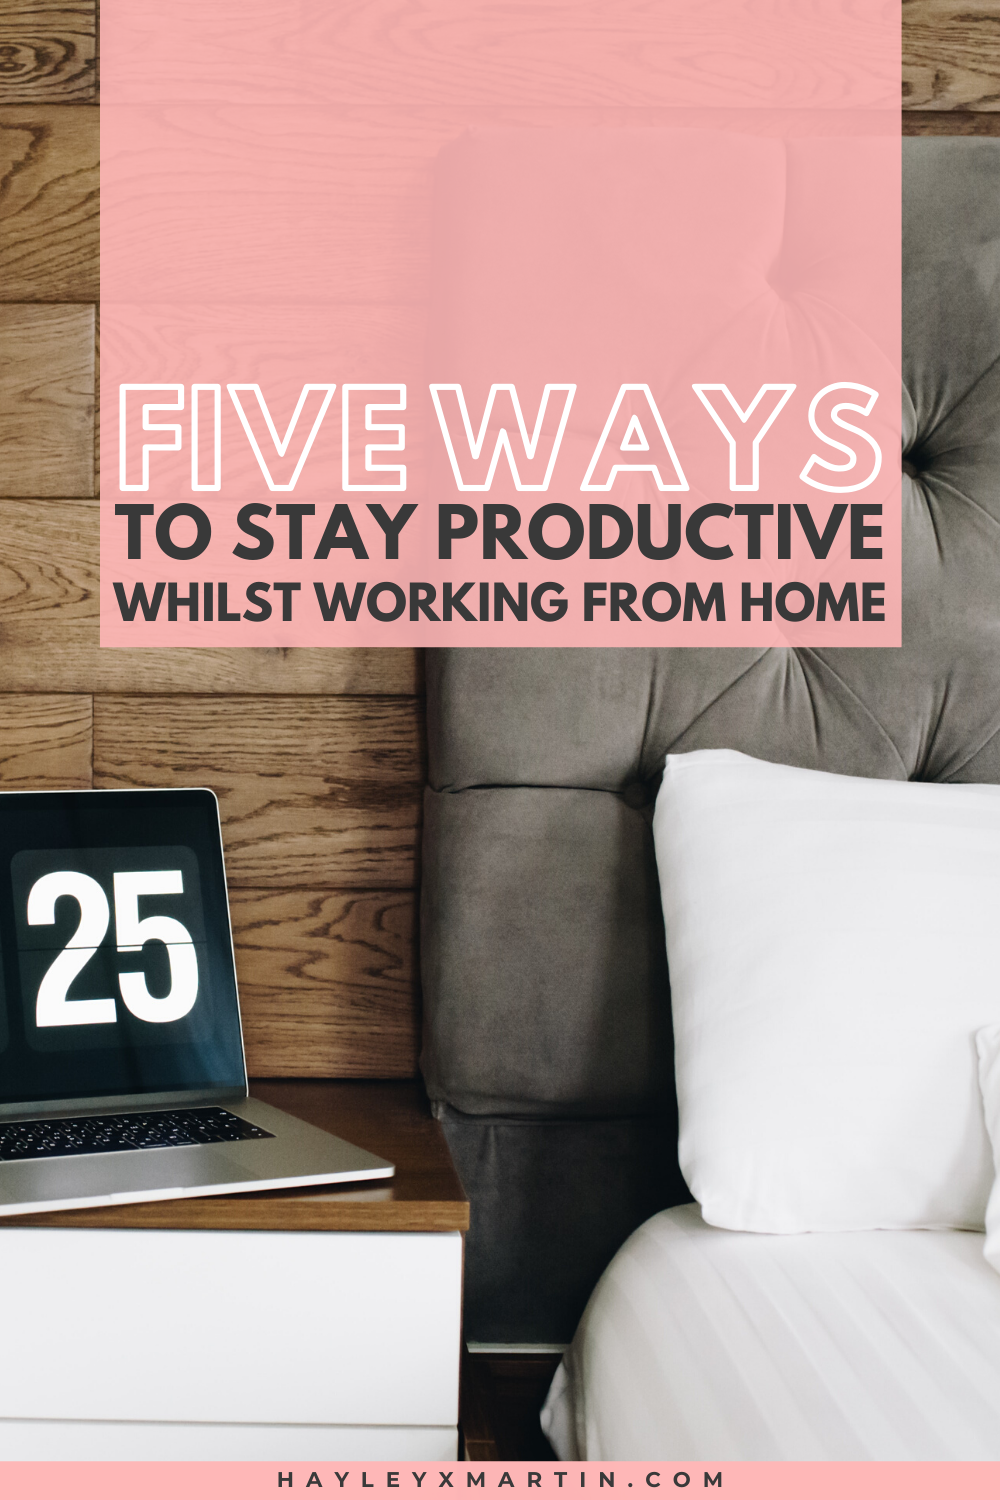 FIVE WAYS TO STAY PRODUCTIVE WHILST WORKING FROM HOME | HAYLEYXMARTIN